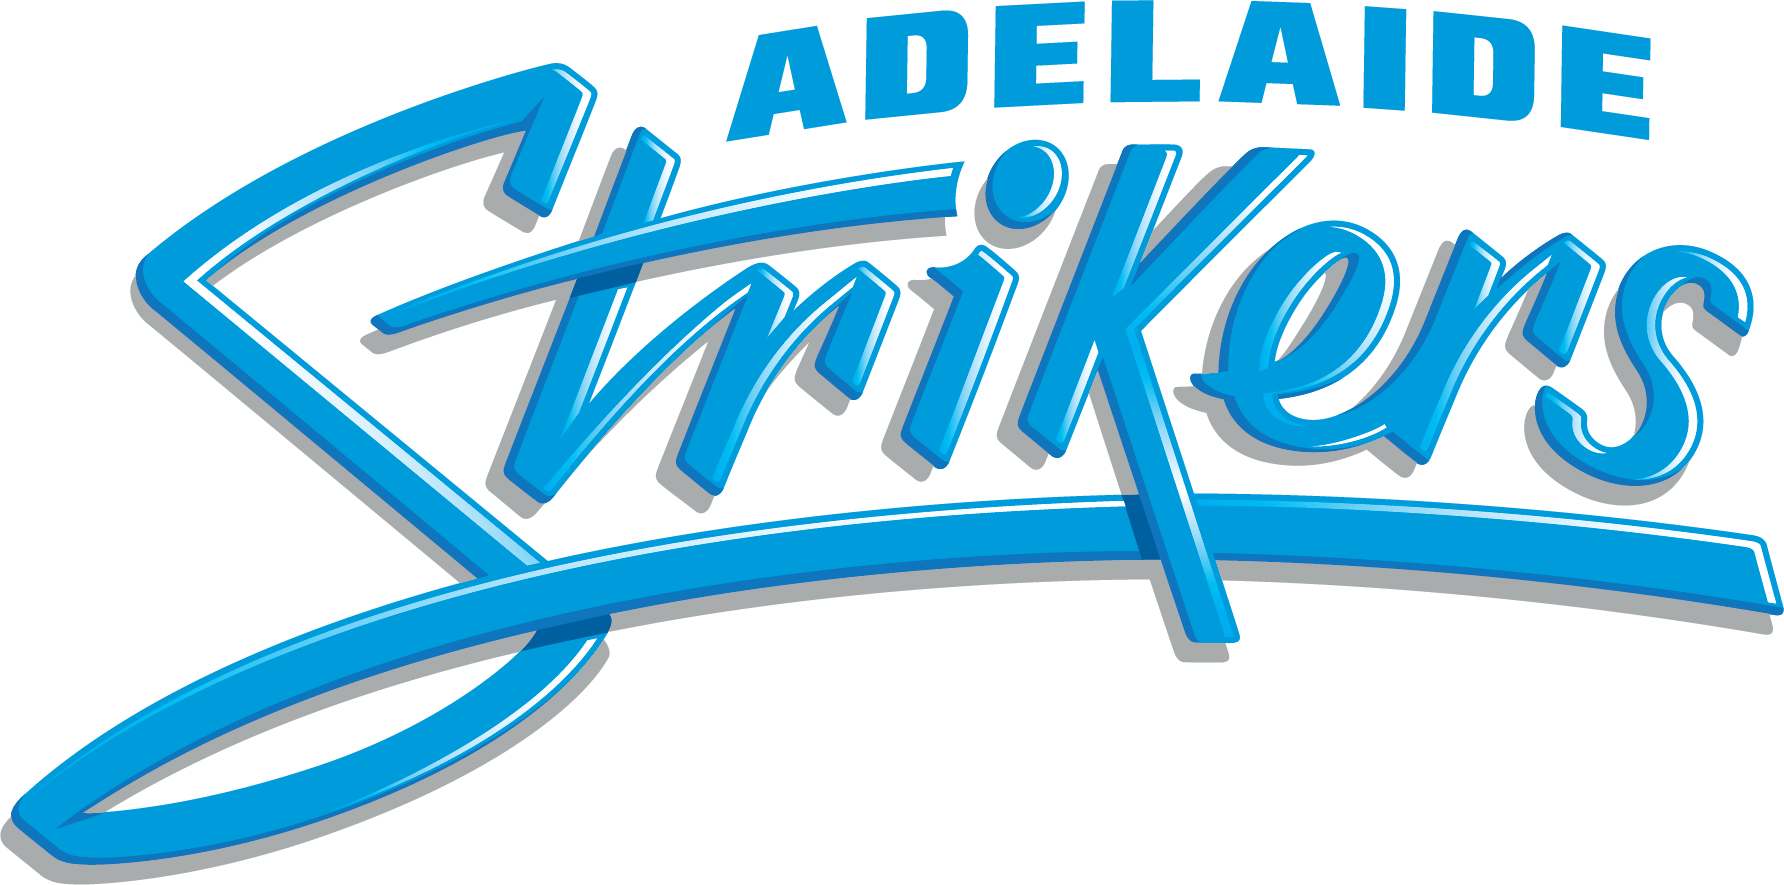 Adelaide Strikers/Other